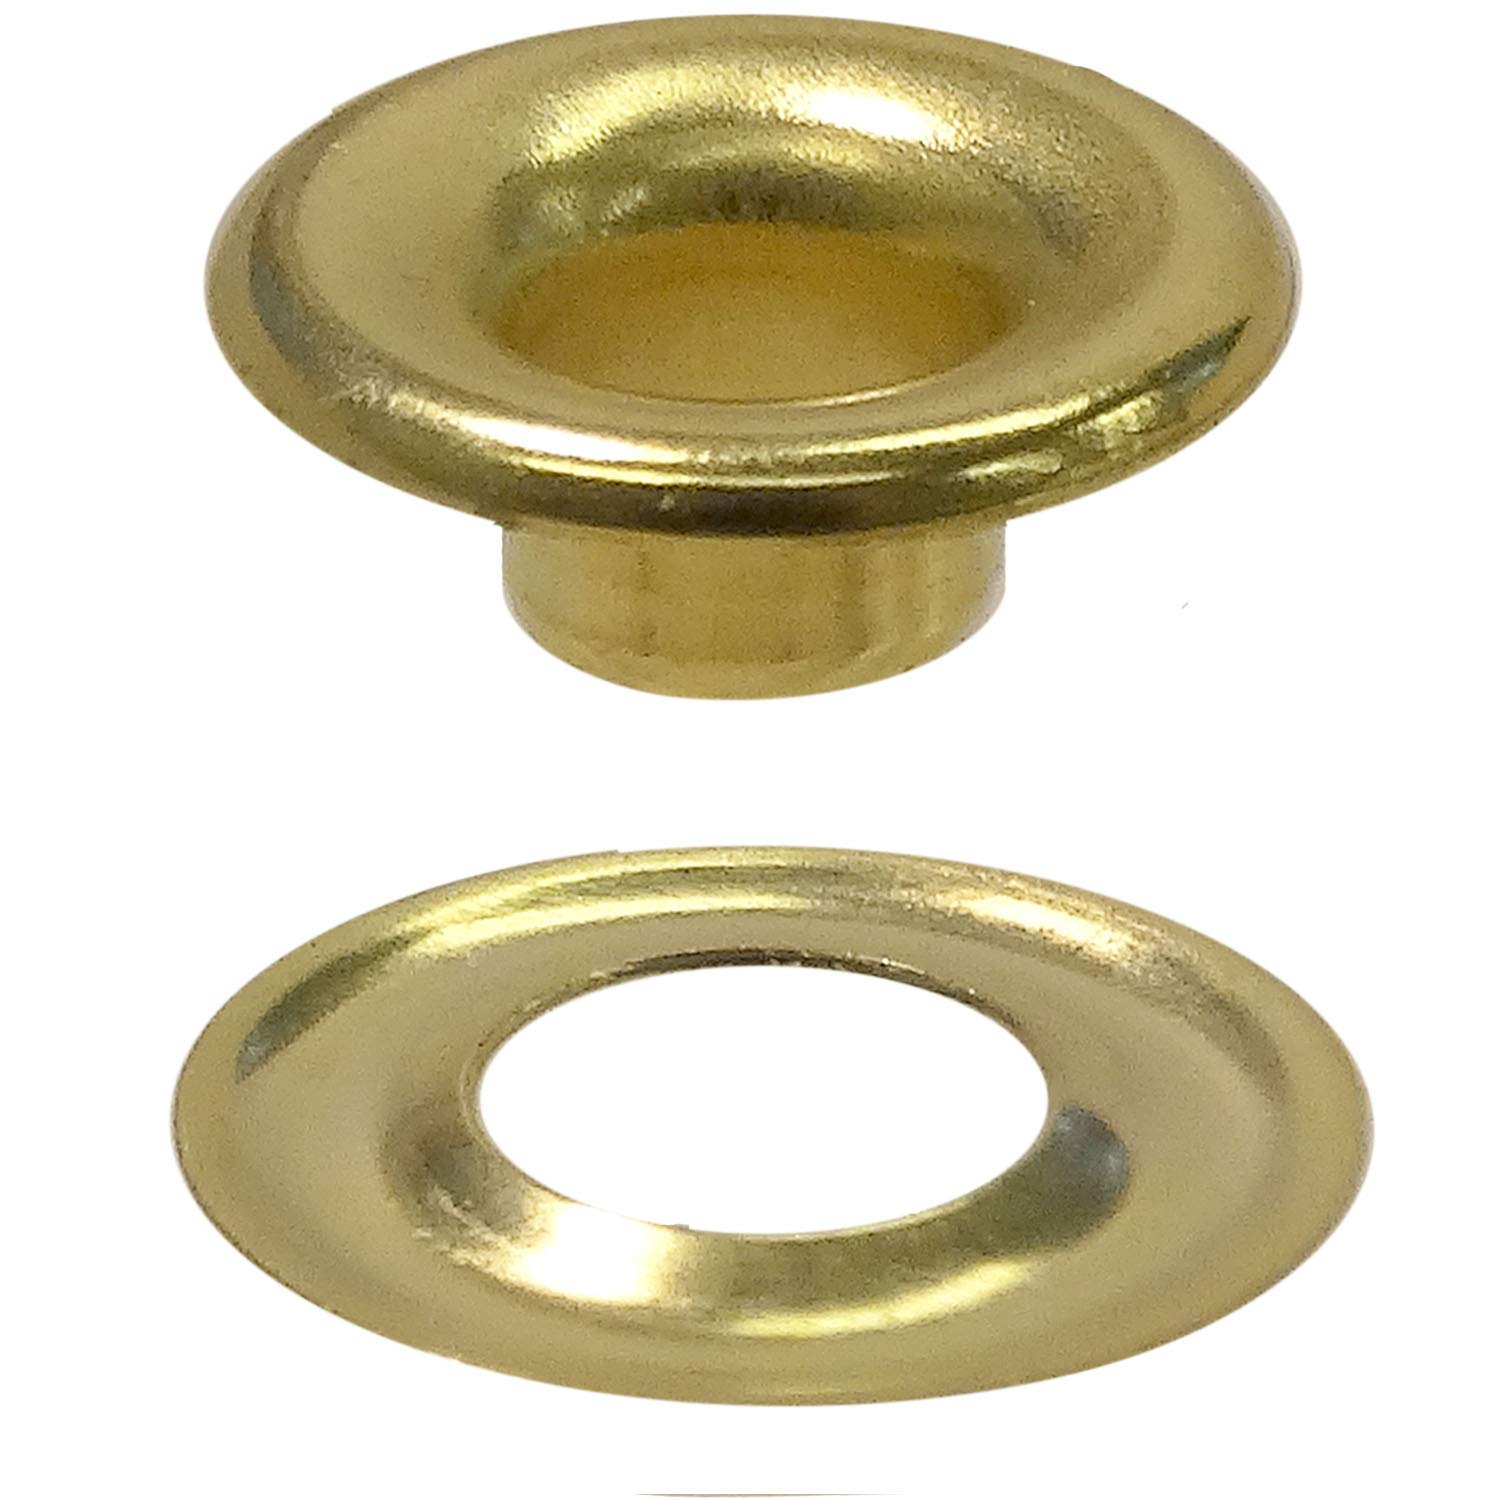 Stimpson Sheet Metal Grommet and Washer Brass Durable, Reliable, Heavy-Duty #00 Set (1,440 pieces of each)